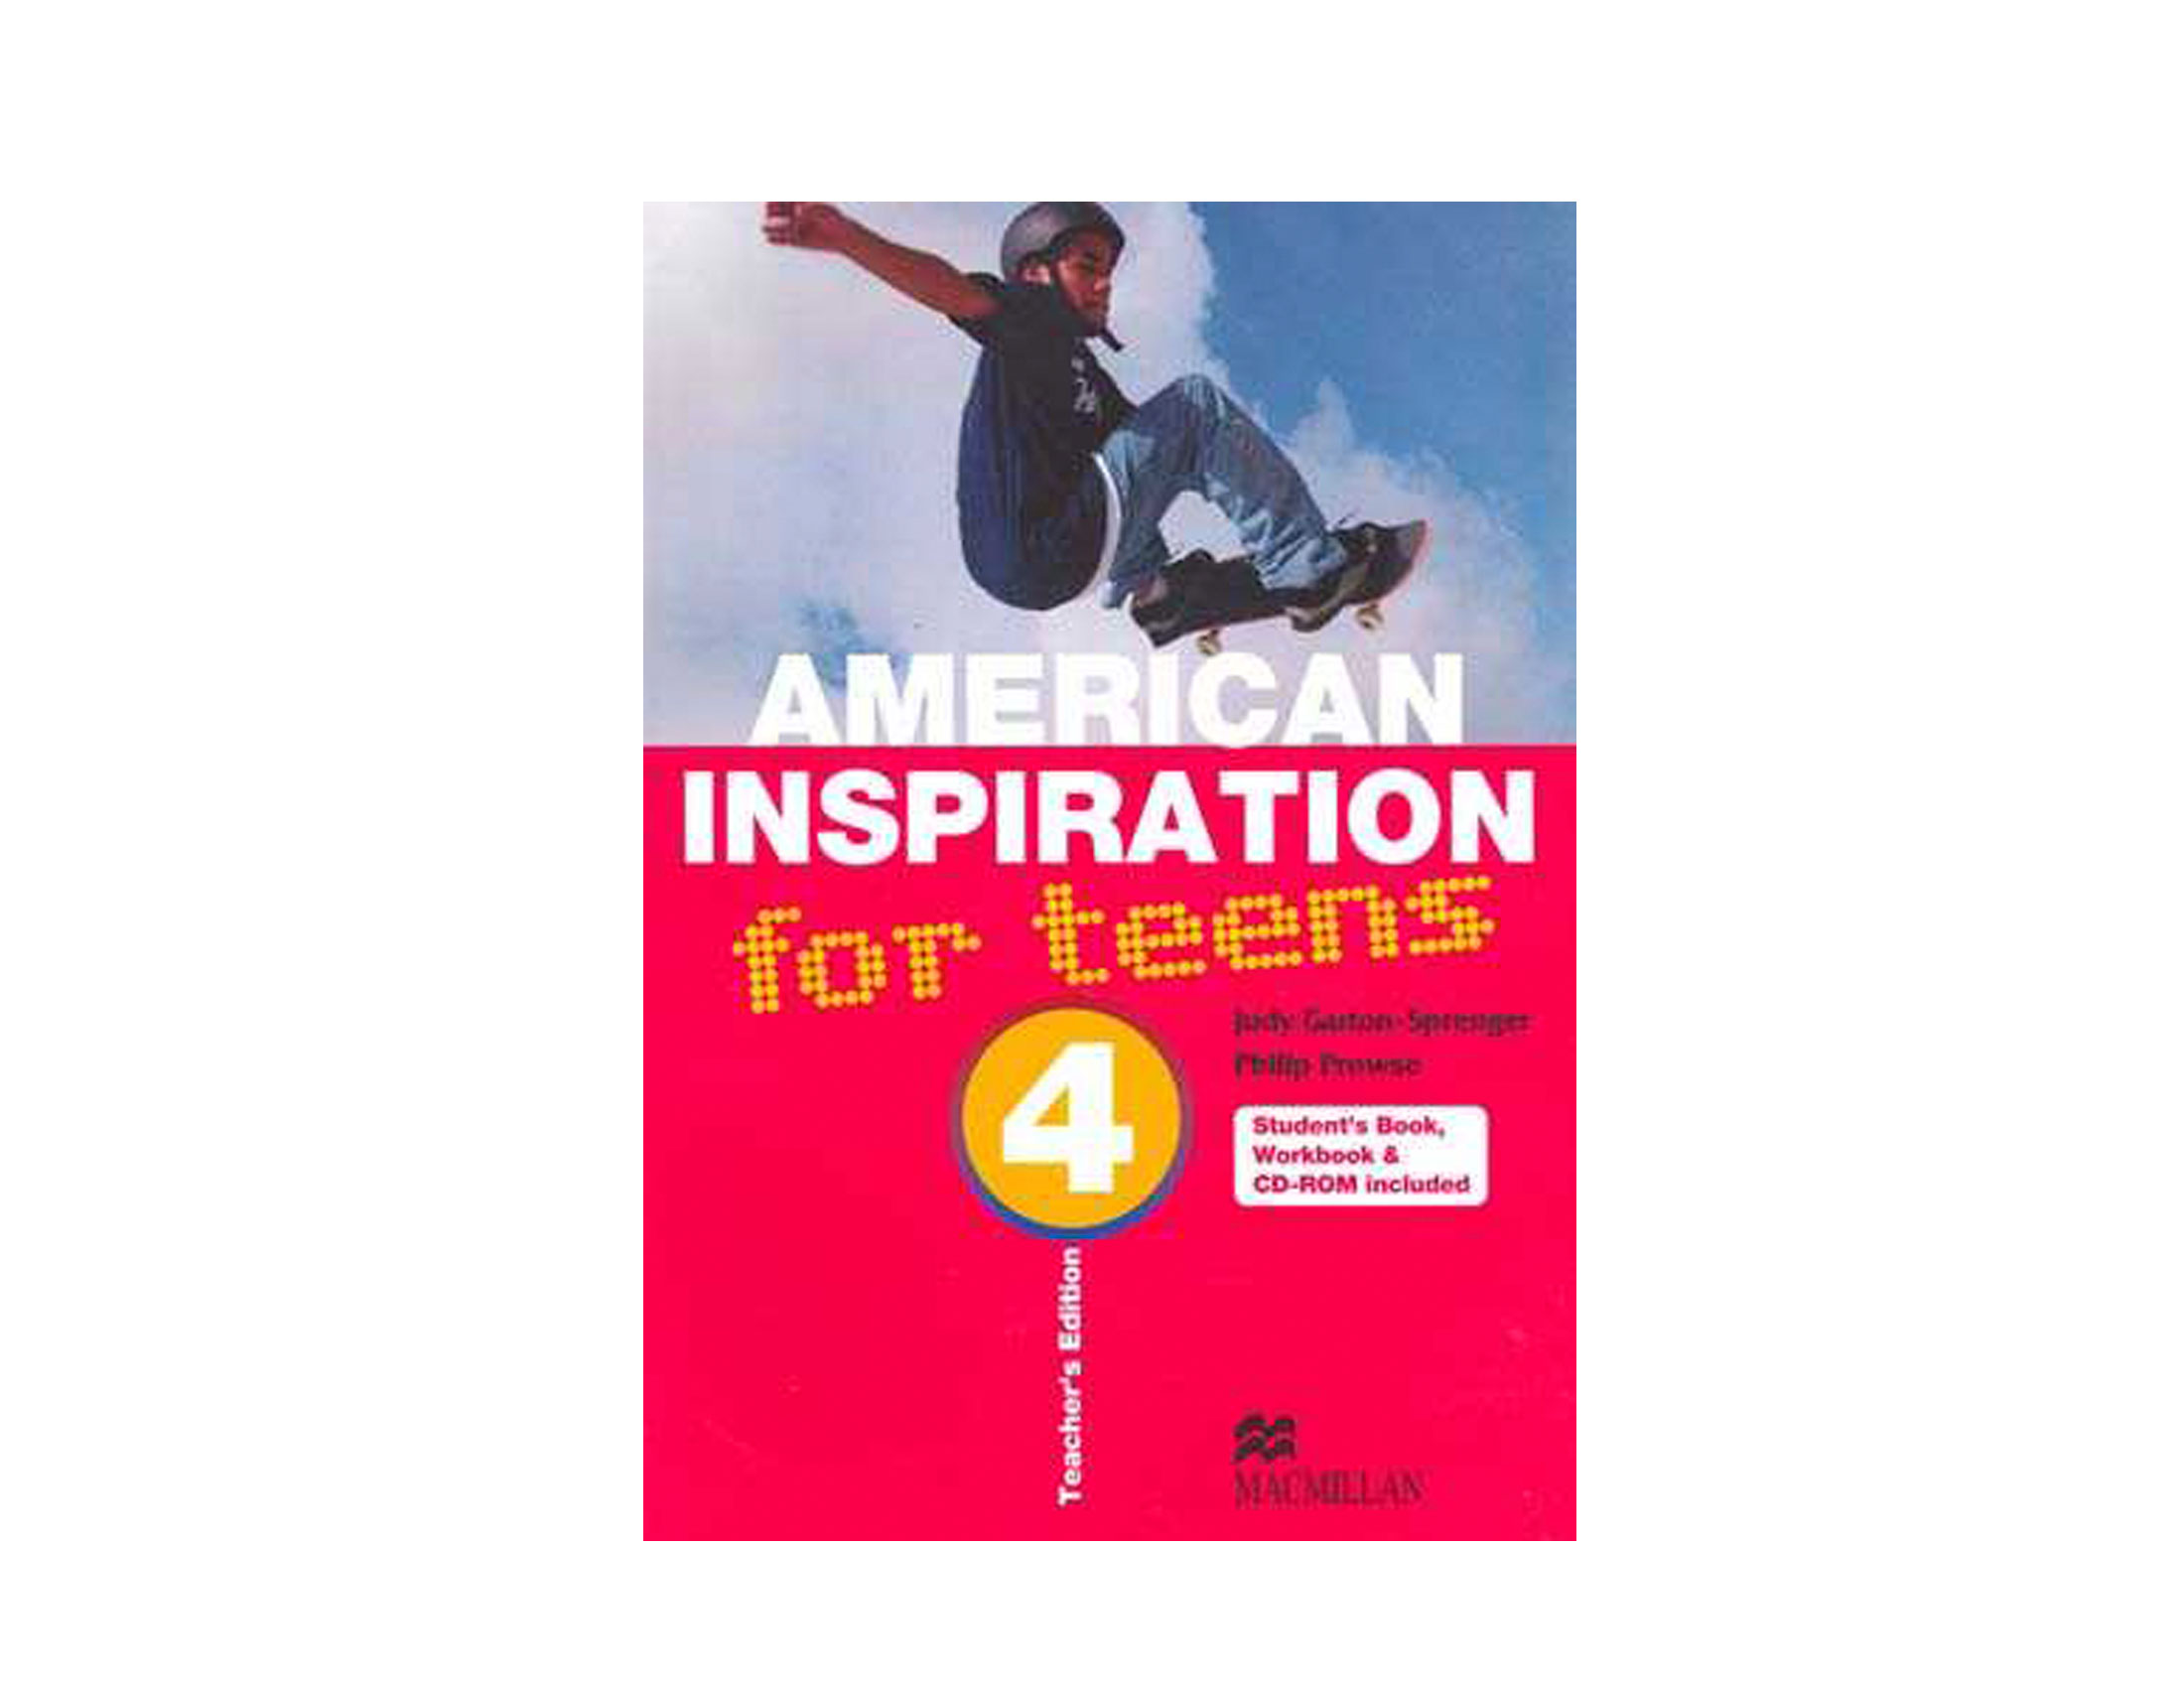 AMERICAN INSPIRATION FOR TEENS STD 4